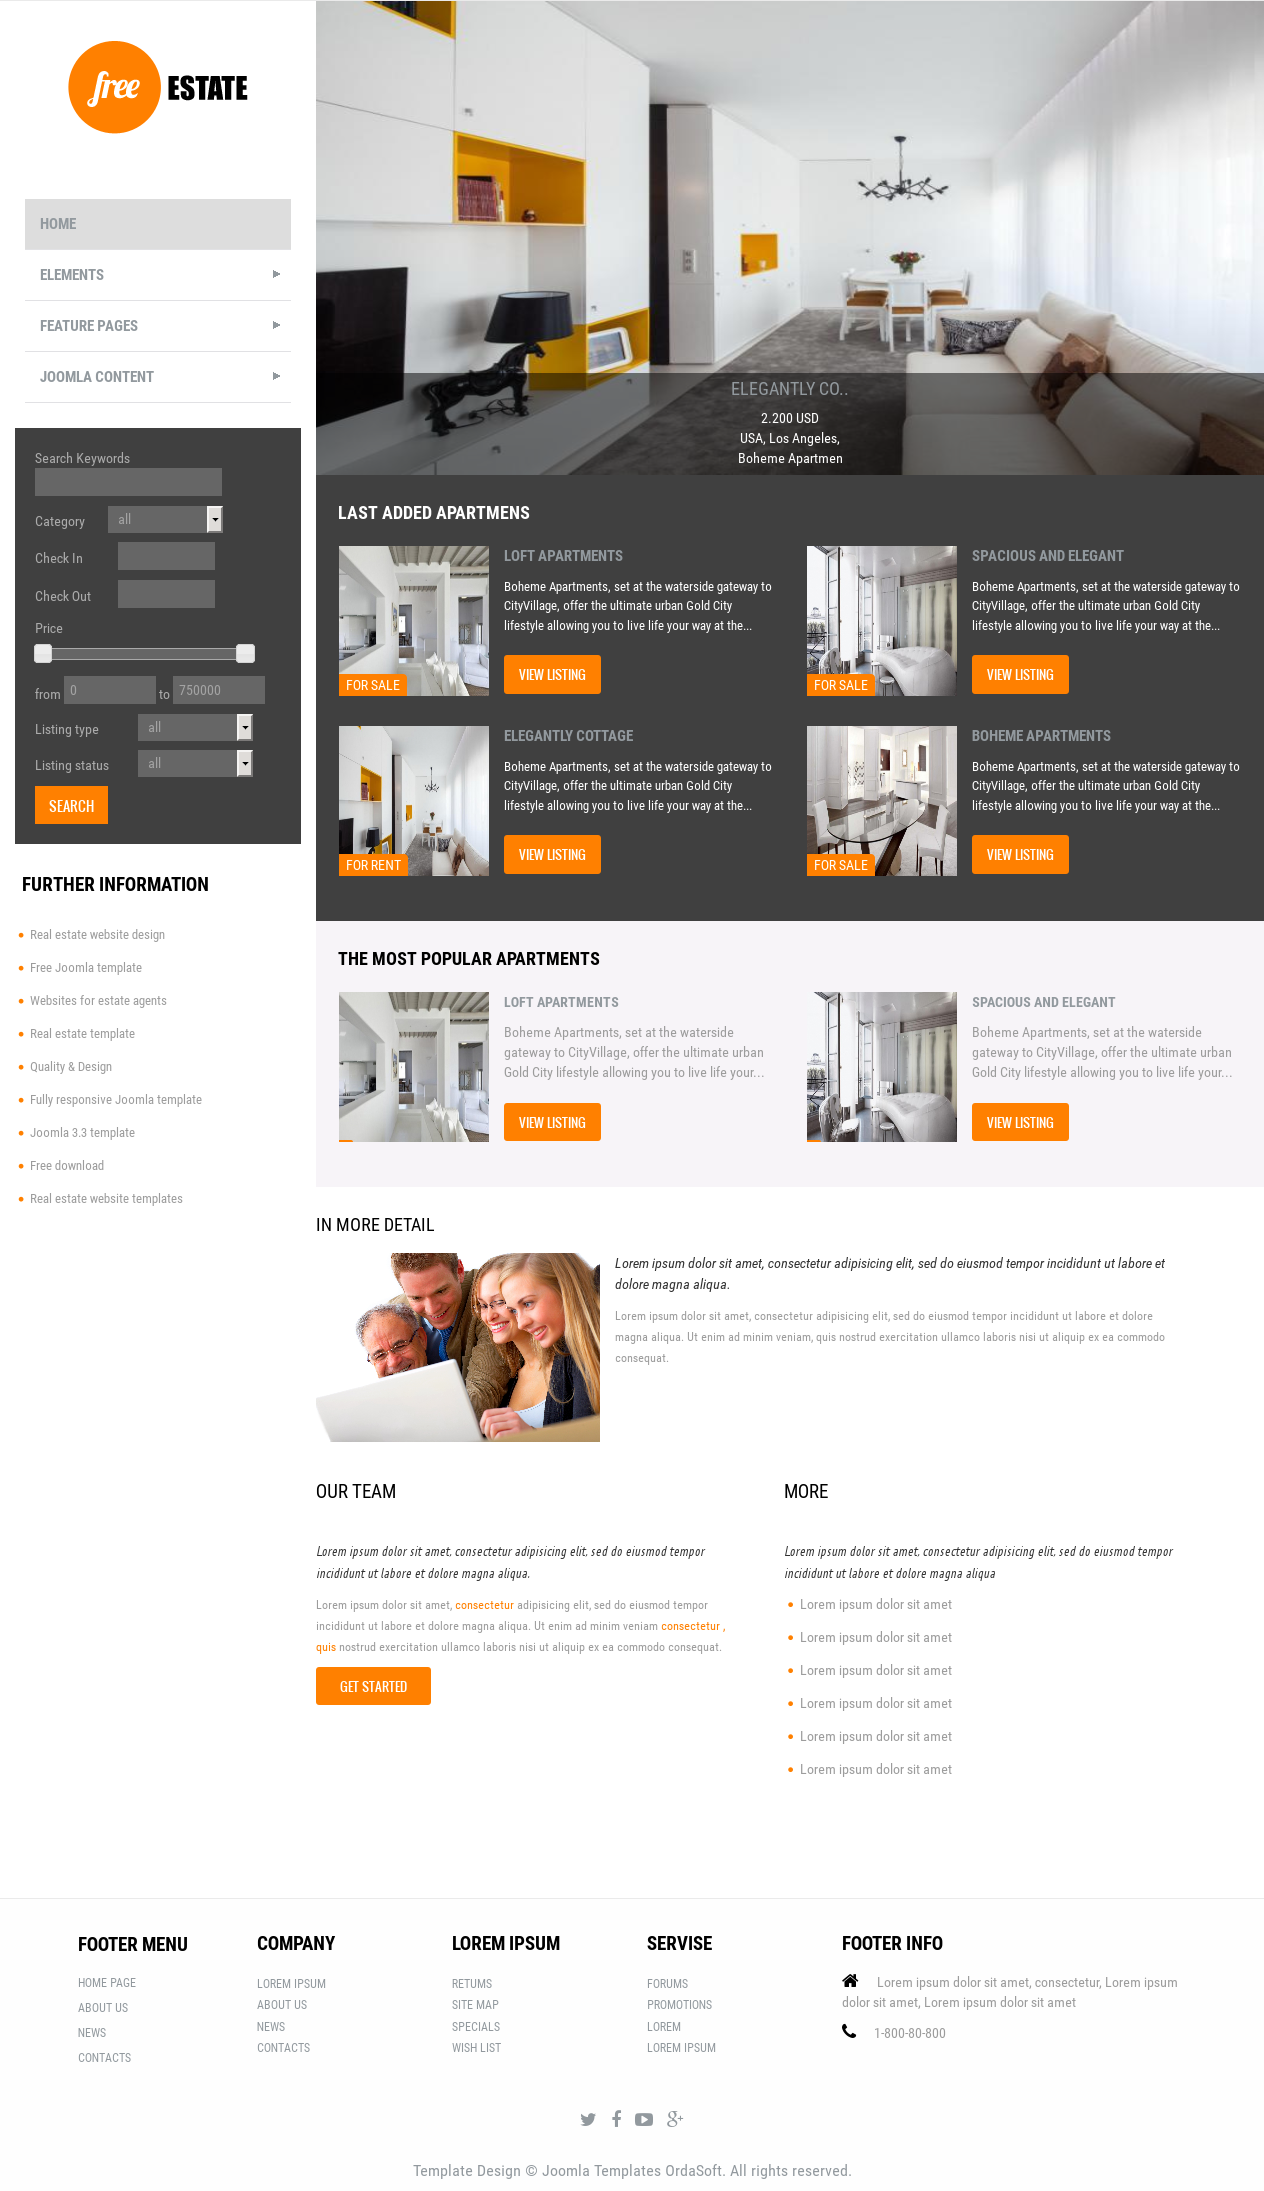 estate is clean real estate template for joomla 3 4 estate is clean real estate template for joomla 3 4 in the base